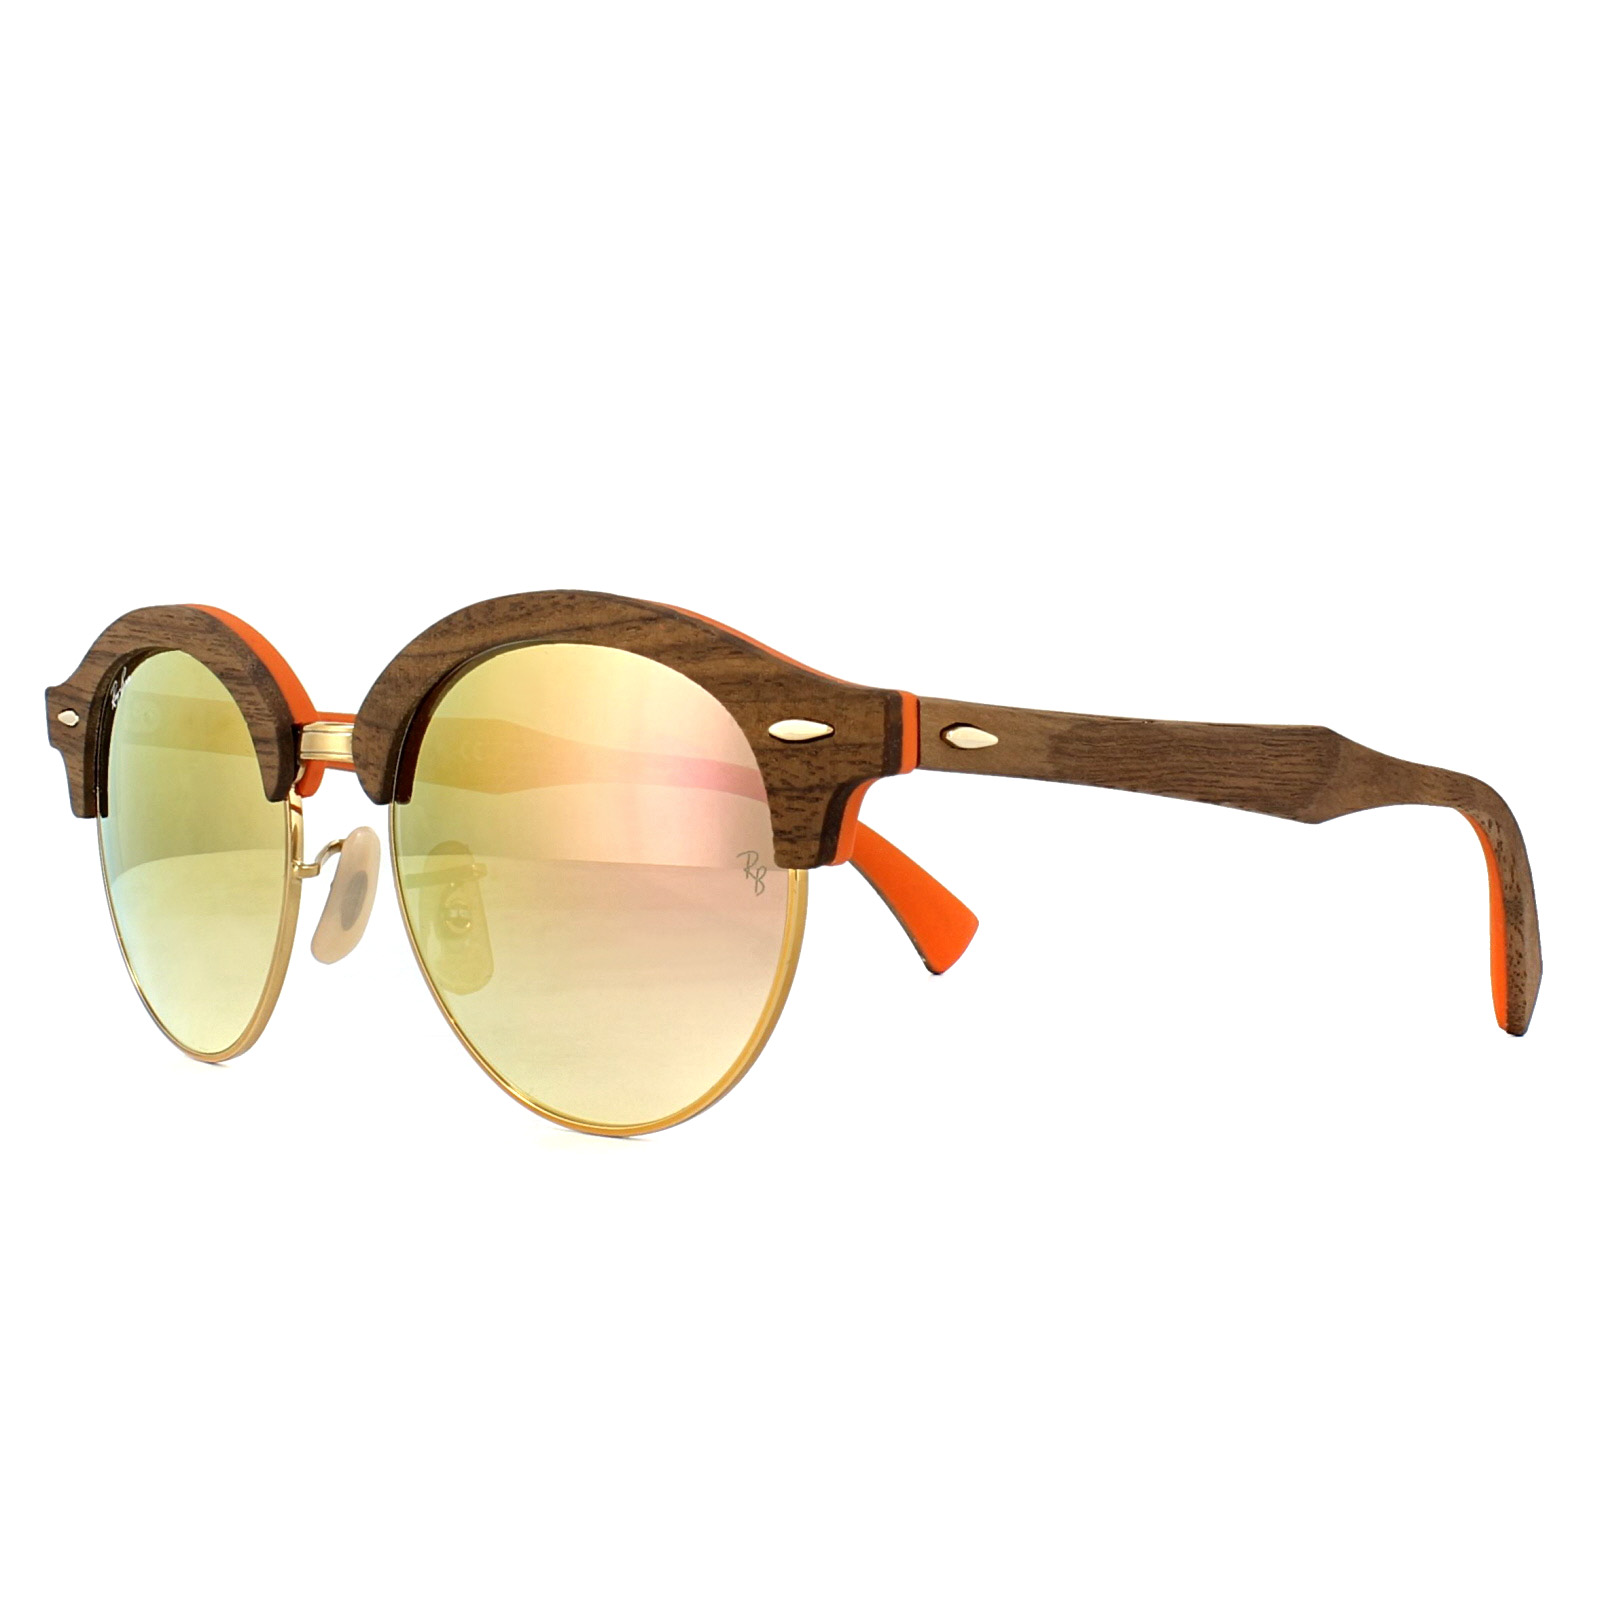 a325c30328d49 Sentinel Ray-Ban Sunglasses Clubround Wood 4246M 12187O Walnut Bronze  Copper Mirror